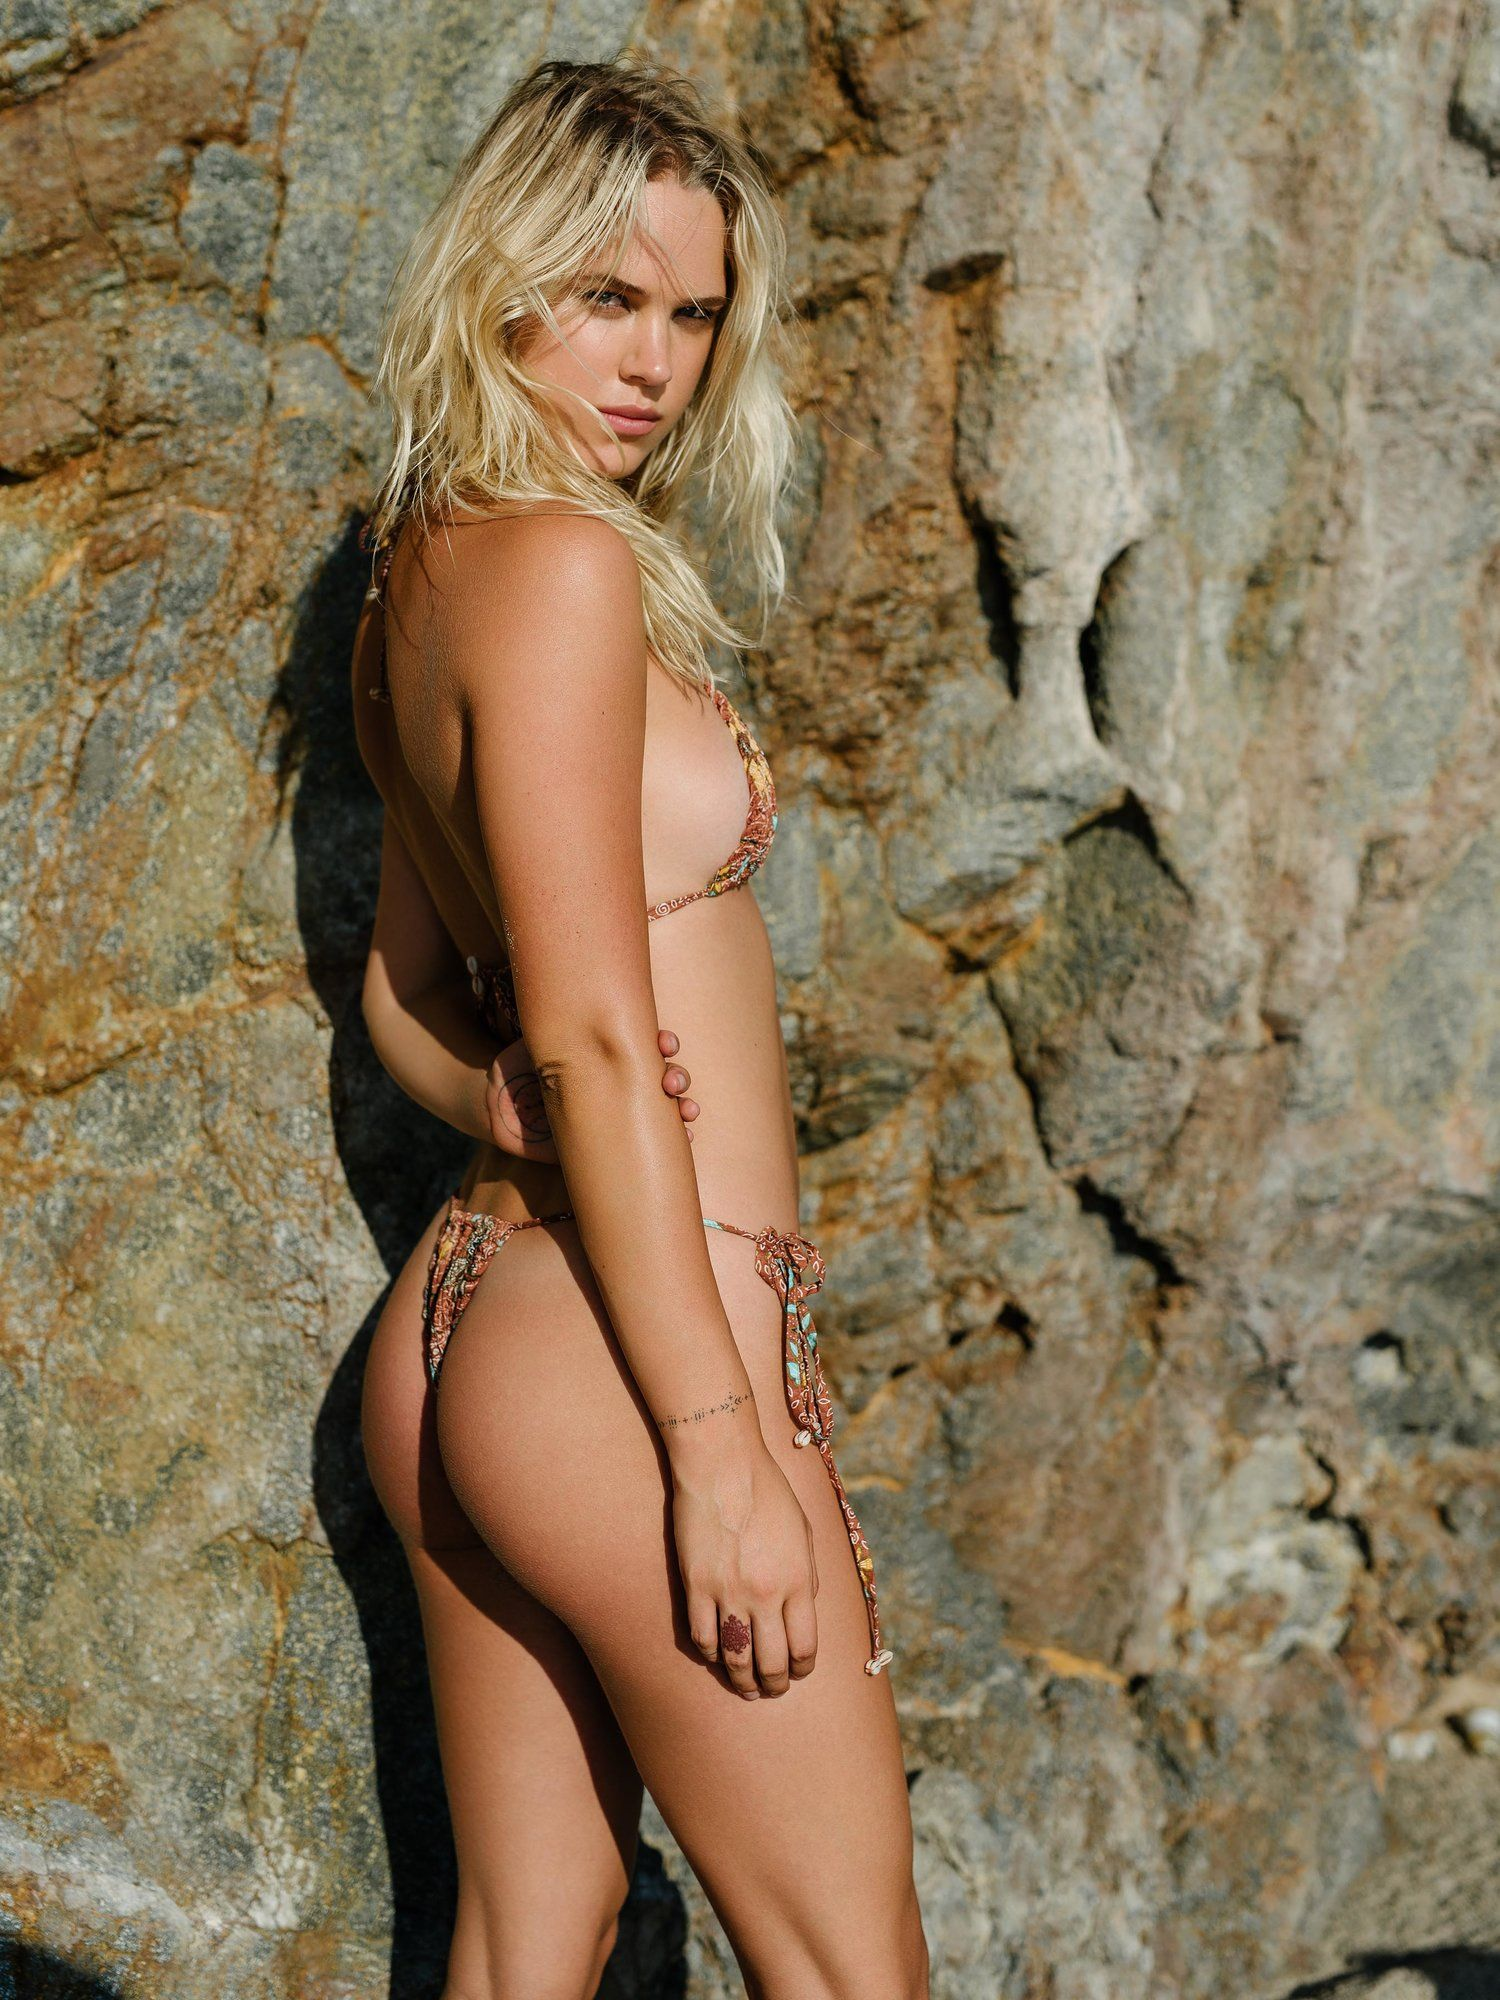 Female celebrity free nude pictures